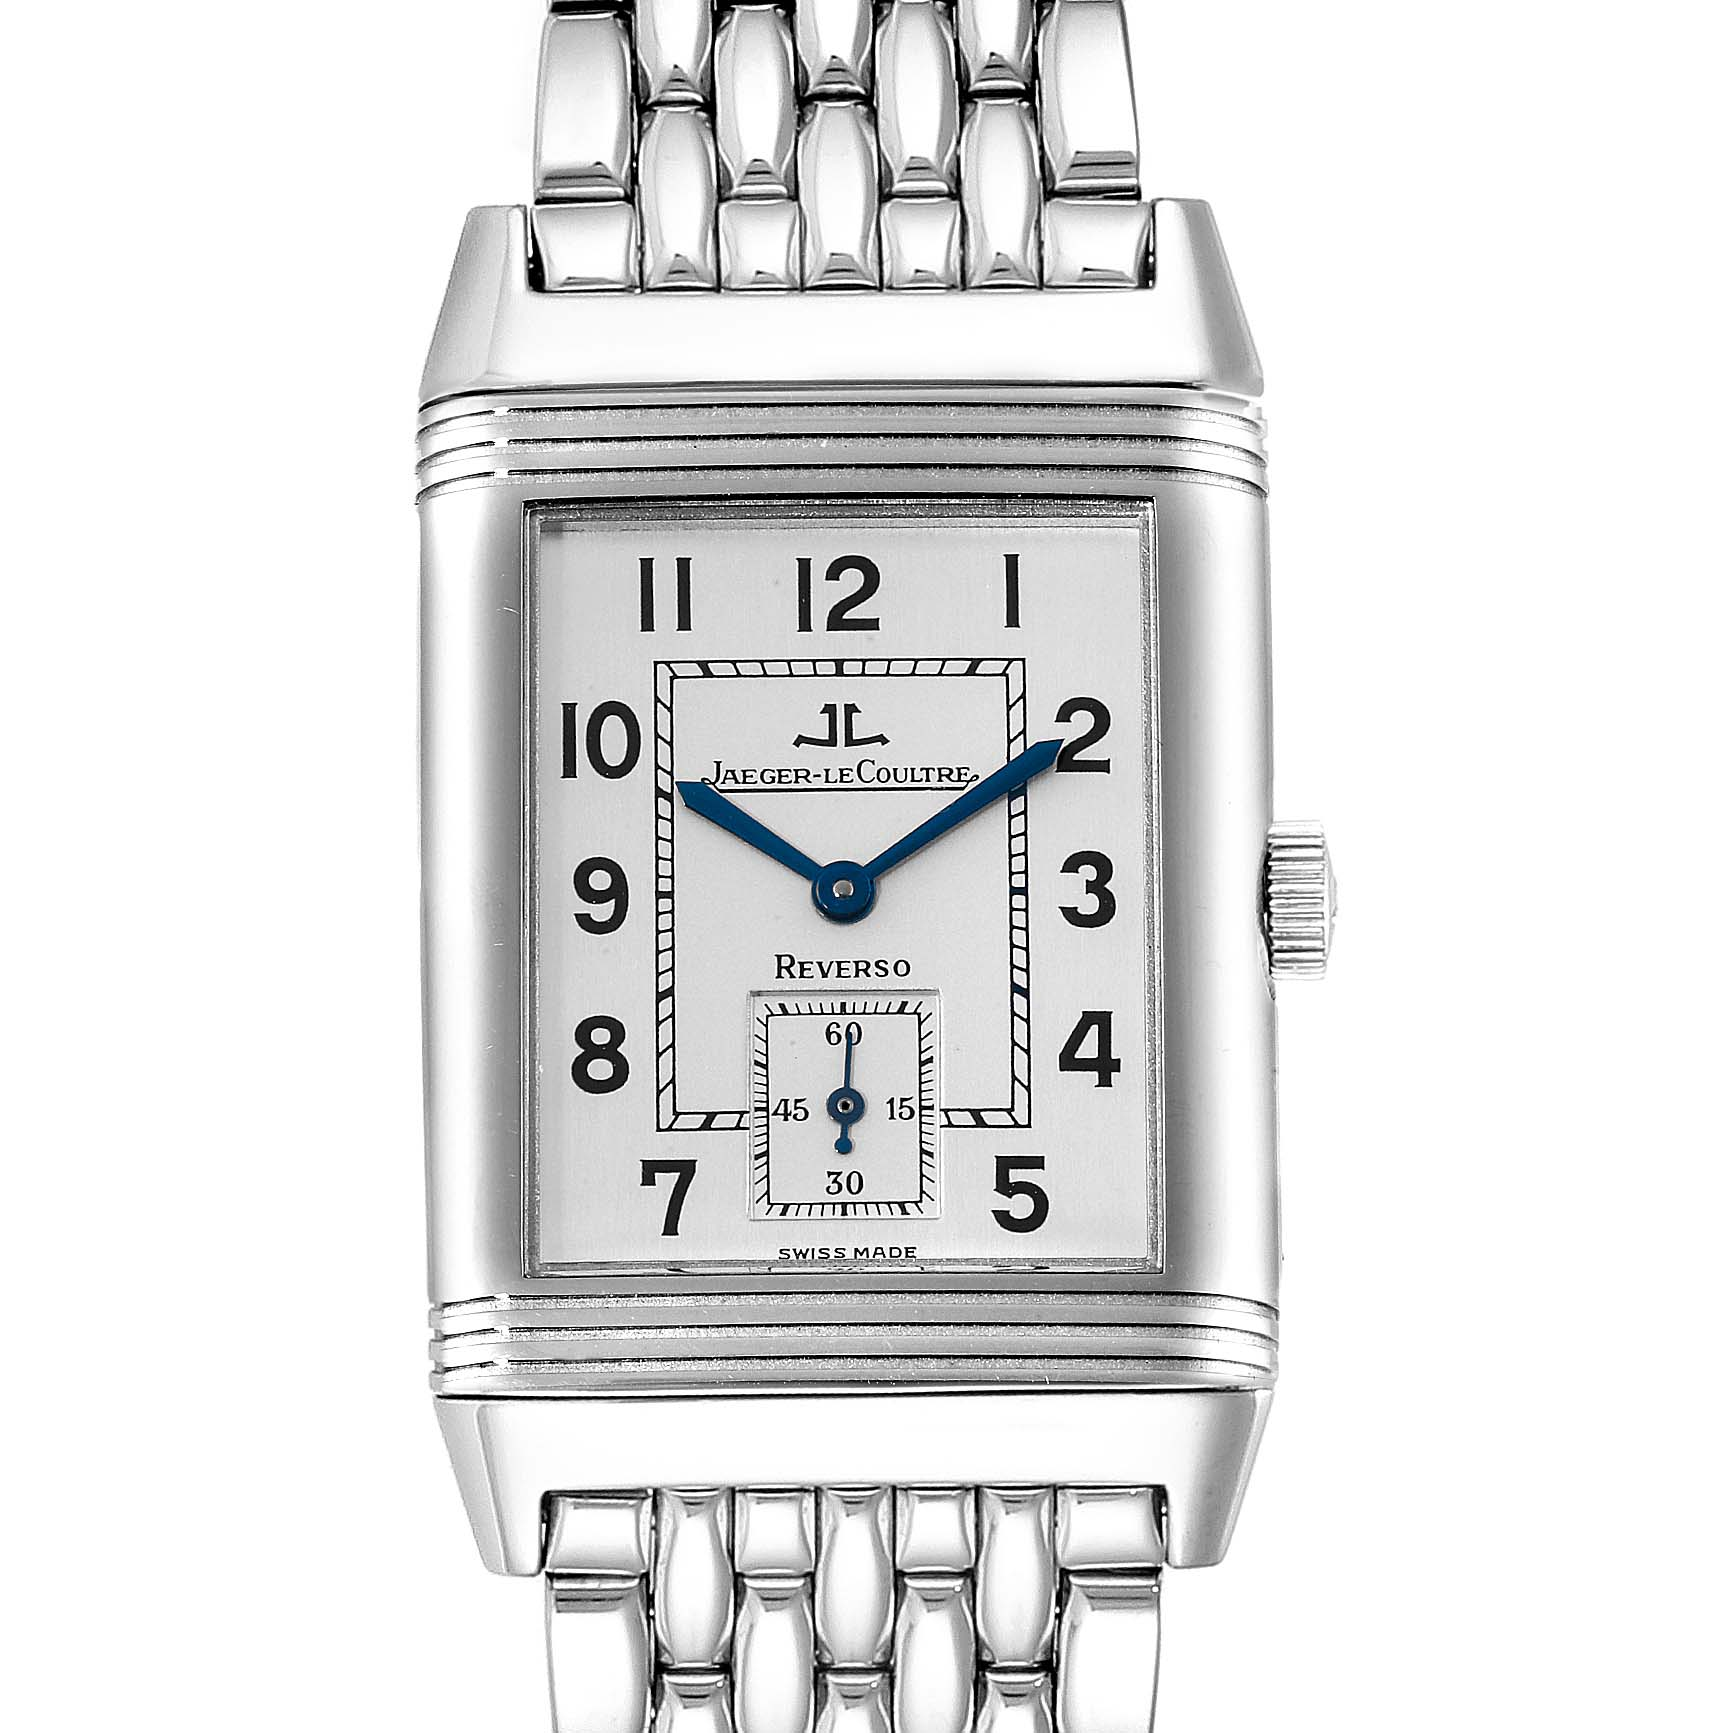 Jaeger LeCoultre Reverso Grande Taille Steel Watch 270.8.62 Box Papers